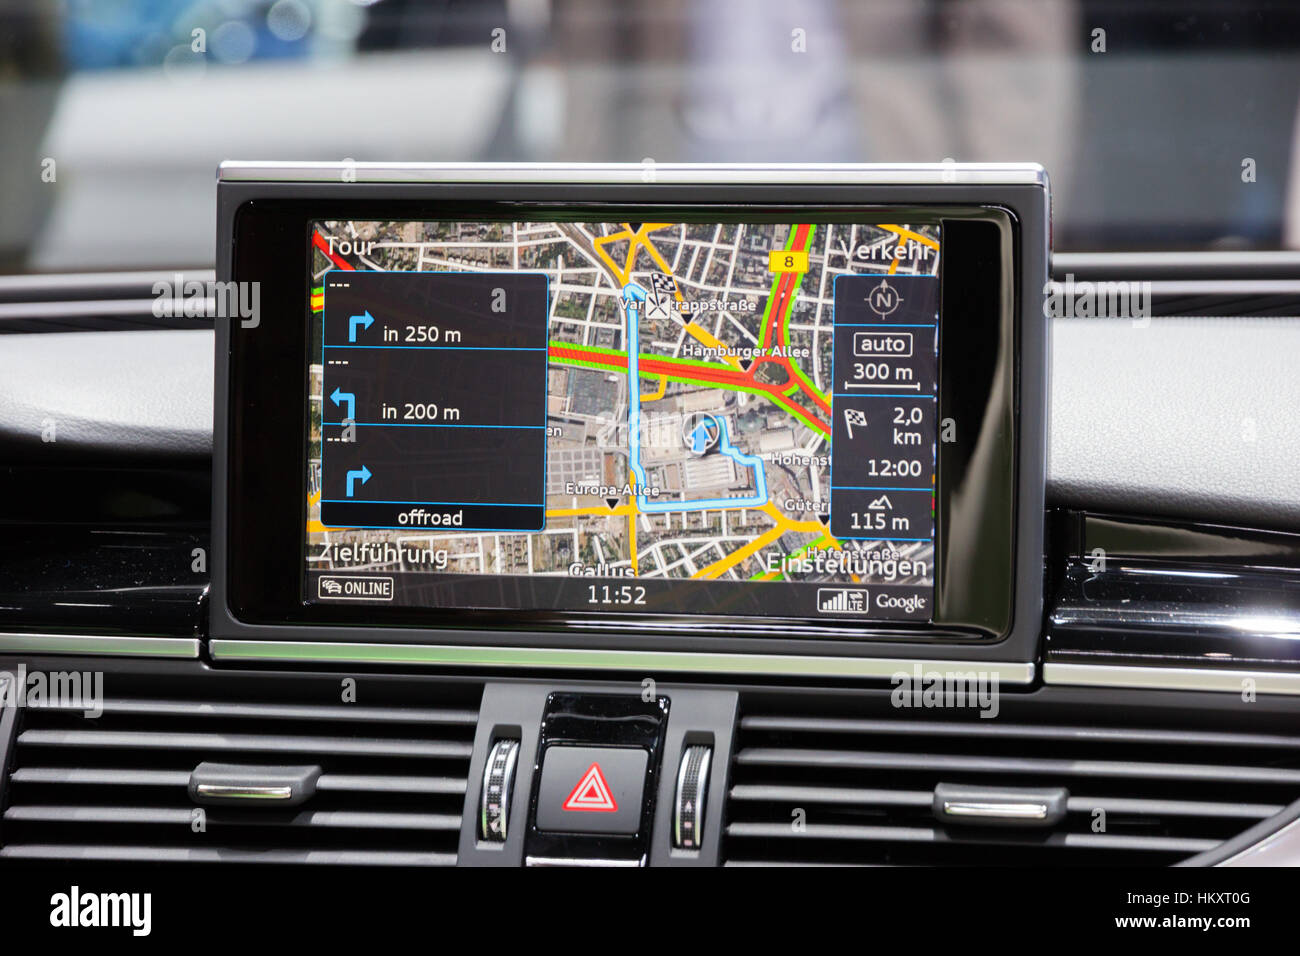 FRANKFURT, GERMANY - SEP 16, 2015: Car navigation in the Audi RS7 shown at the IAA 2015. - Stock Image